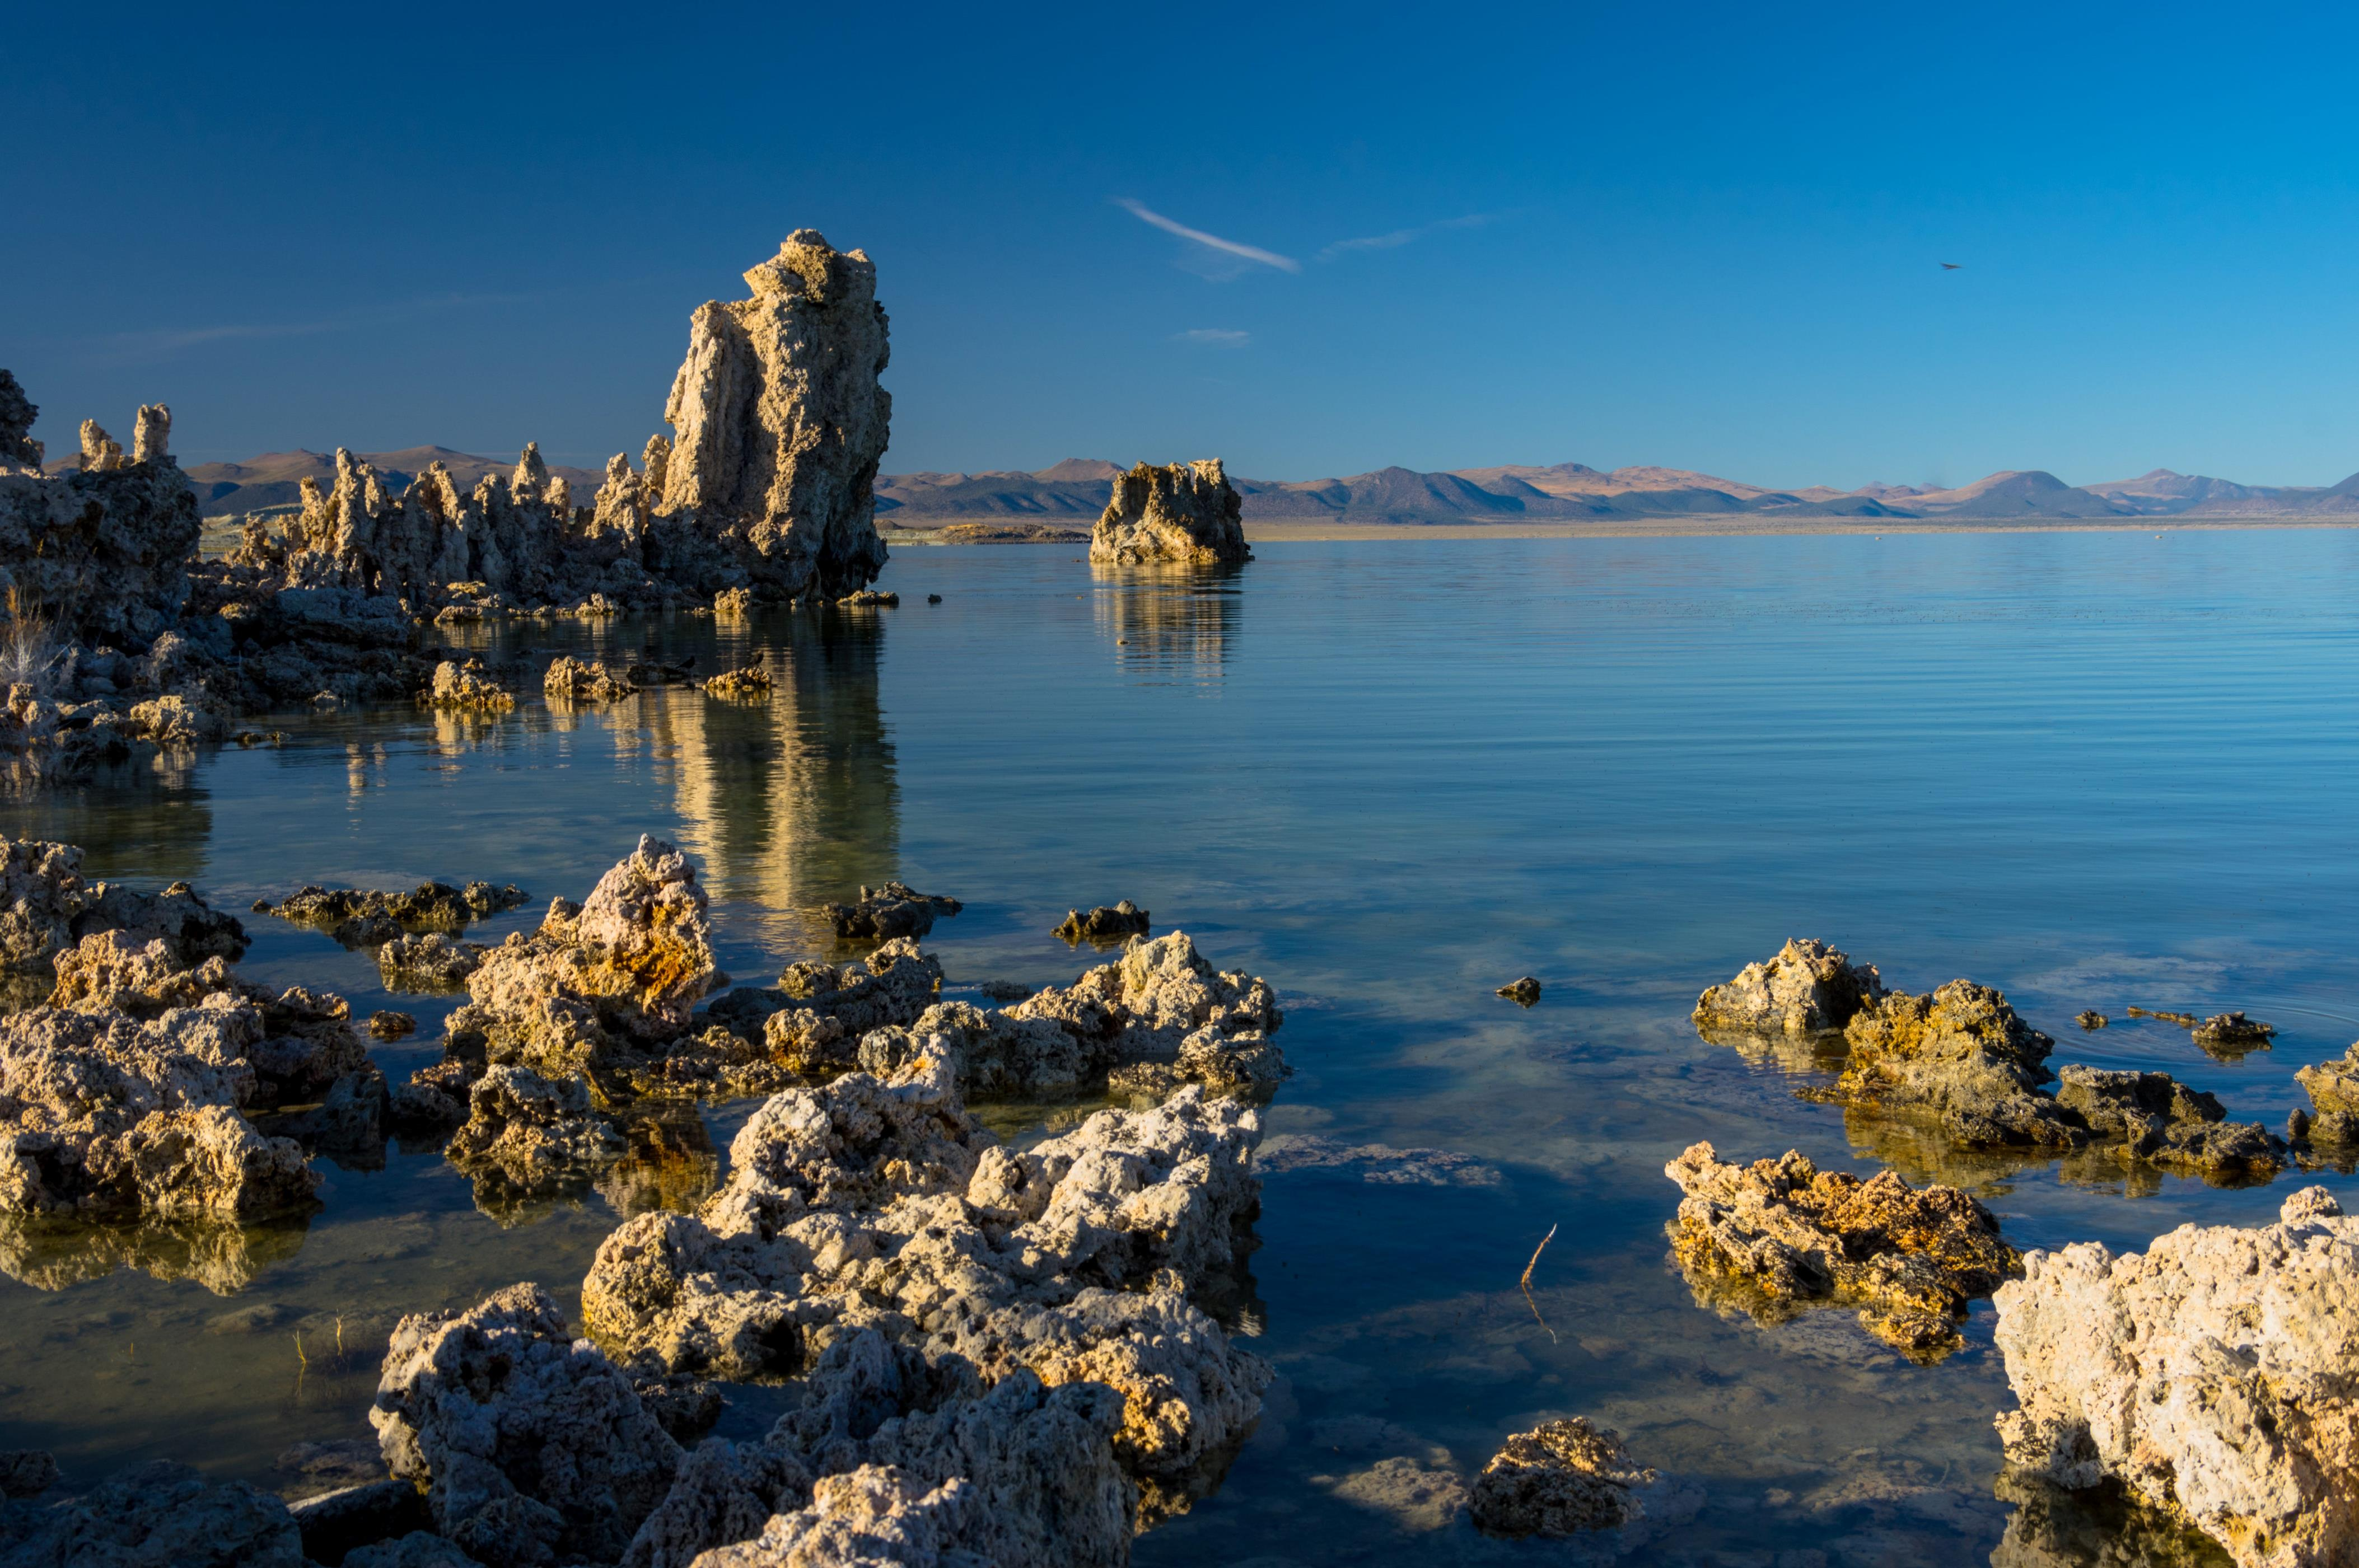 Slide 38 of 51: Mono Lake, which spans 65 square miles, is known for eye-catching, calcium-carbonite structures known as tufa towers. With a high salt content, this ethereal lake is also extremely buoyant.